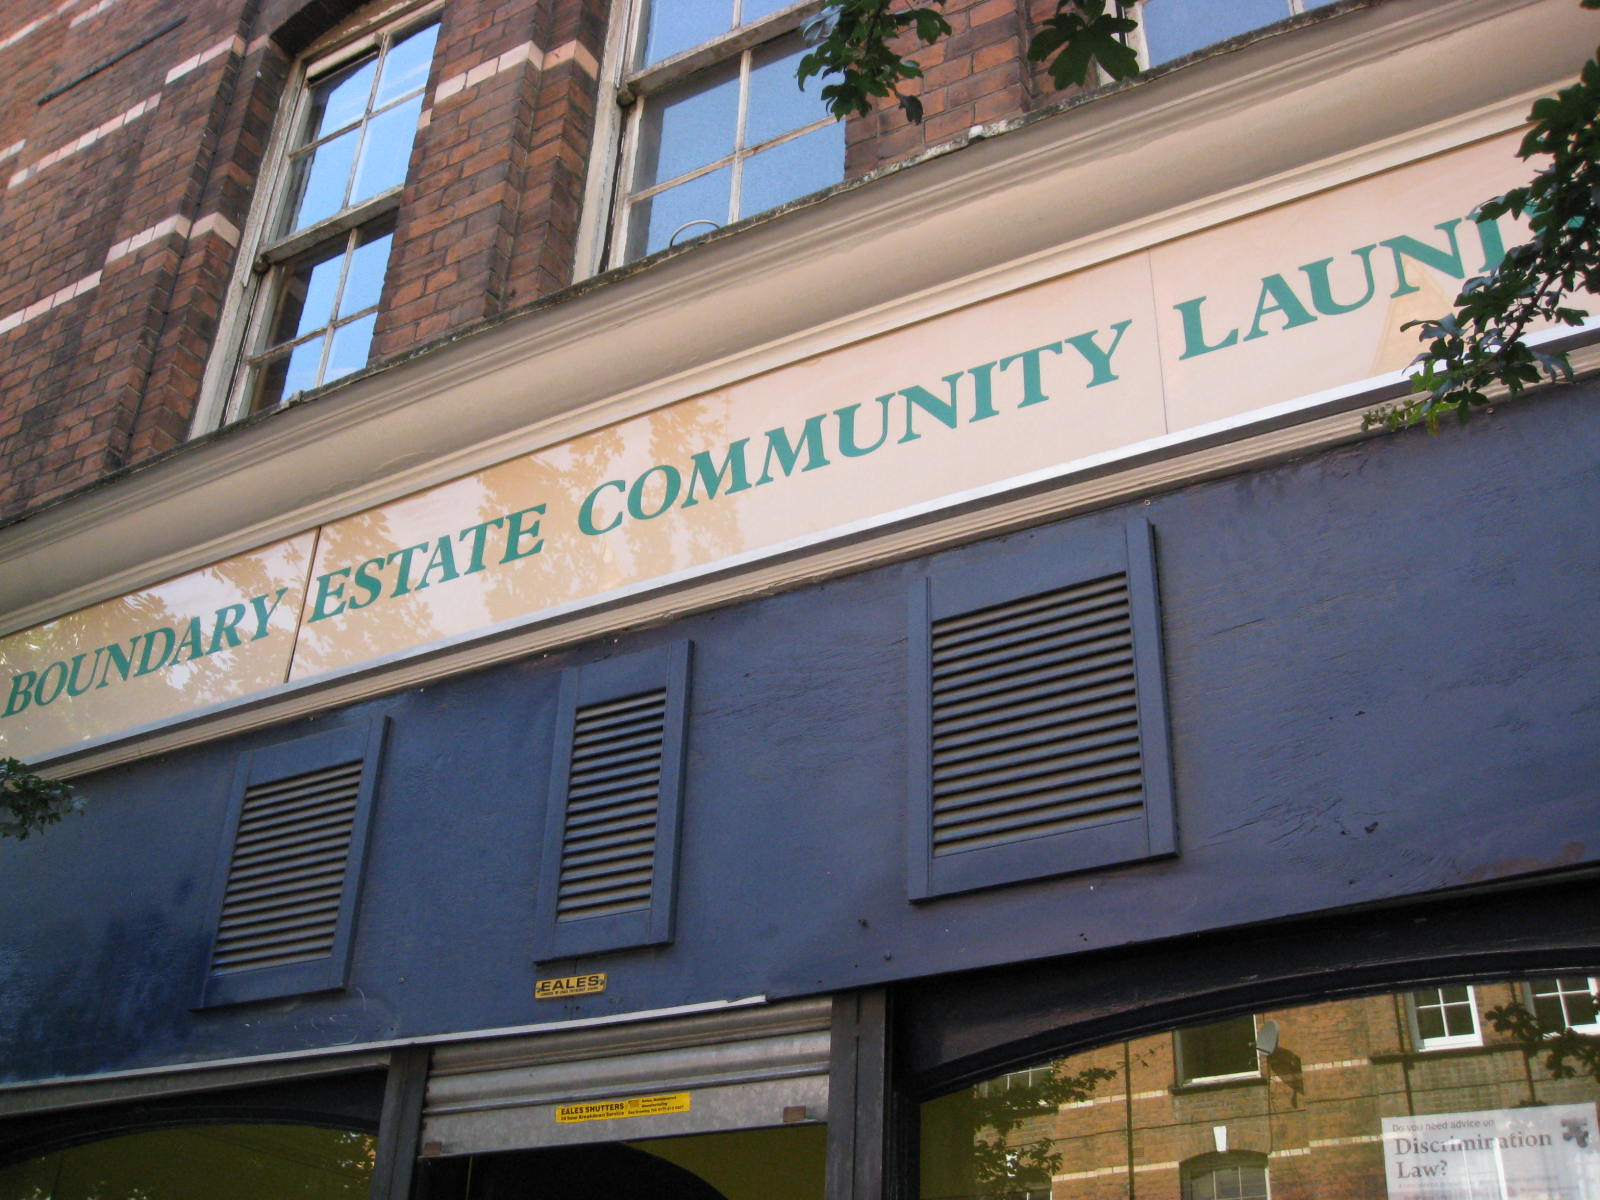 The Boundary Estate Community Laundrette London